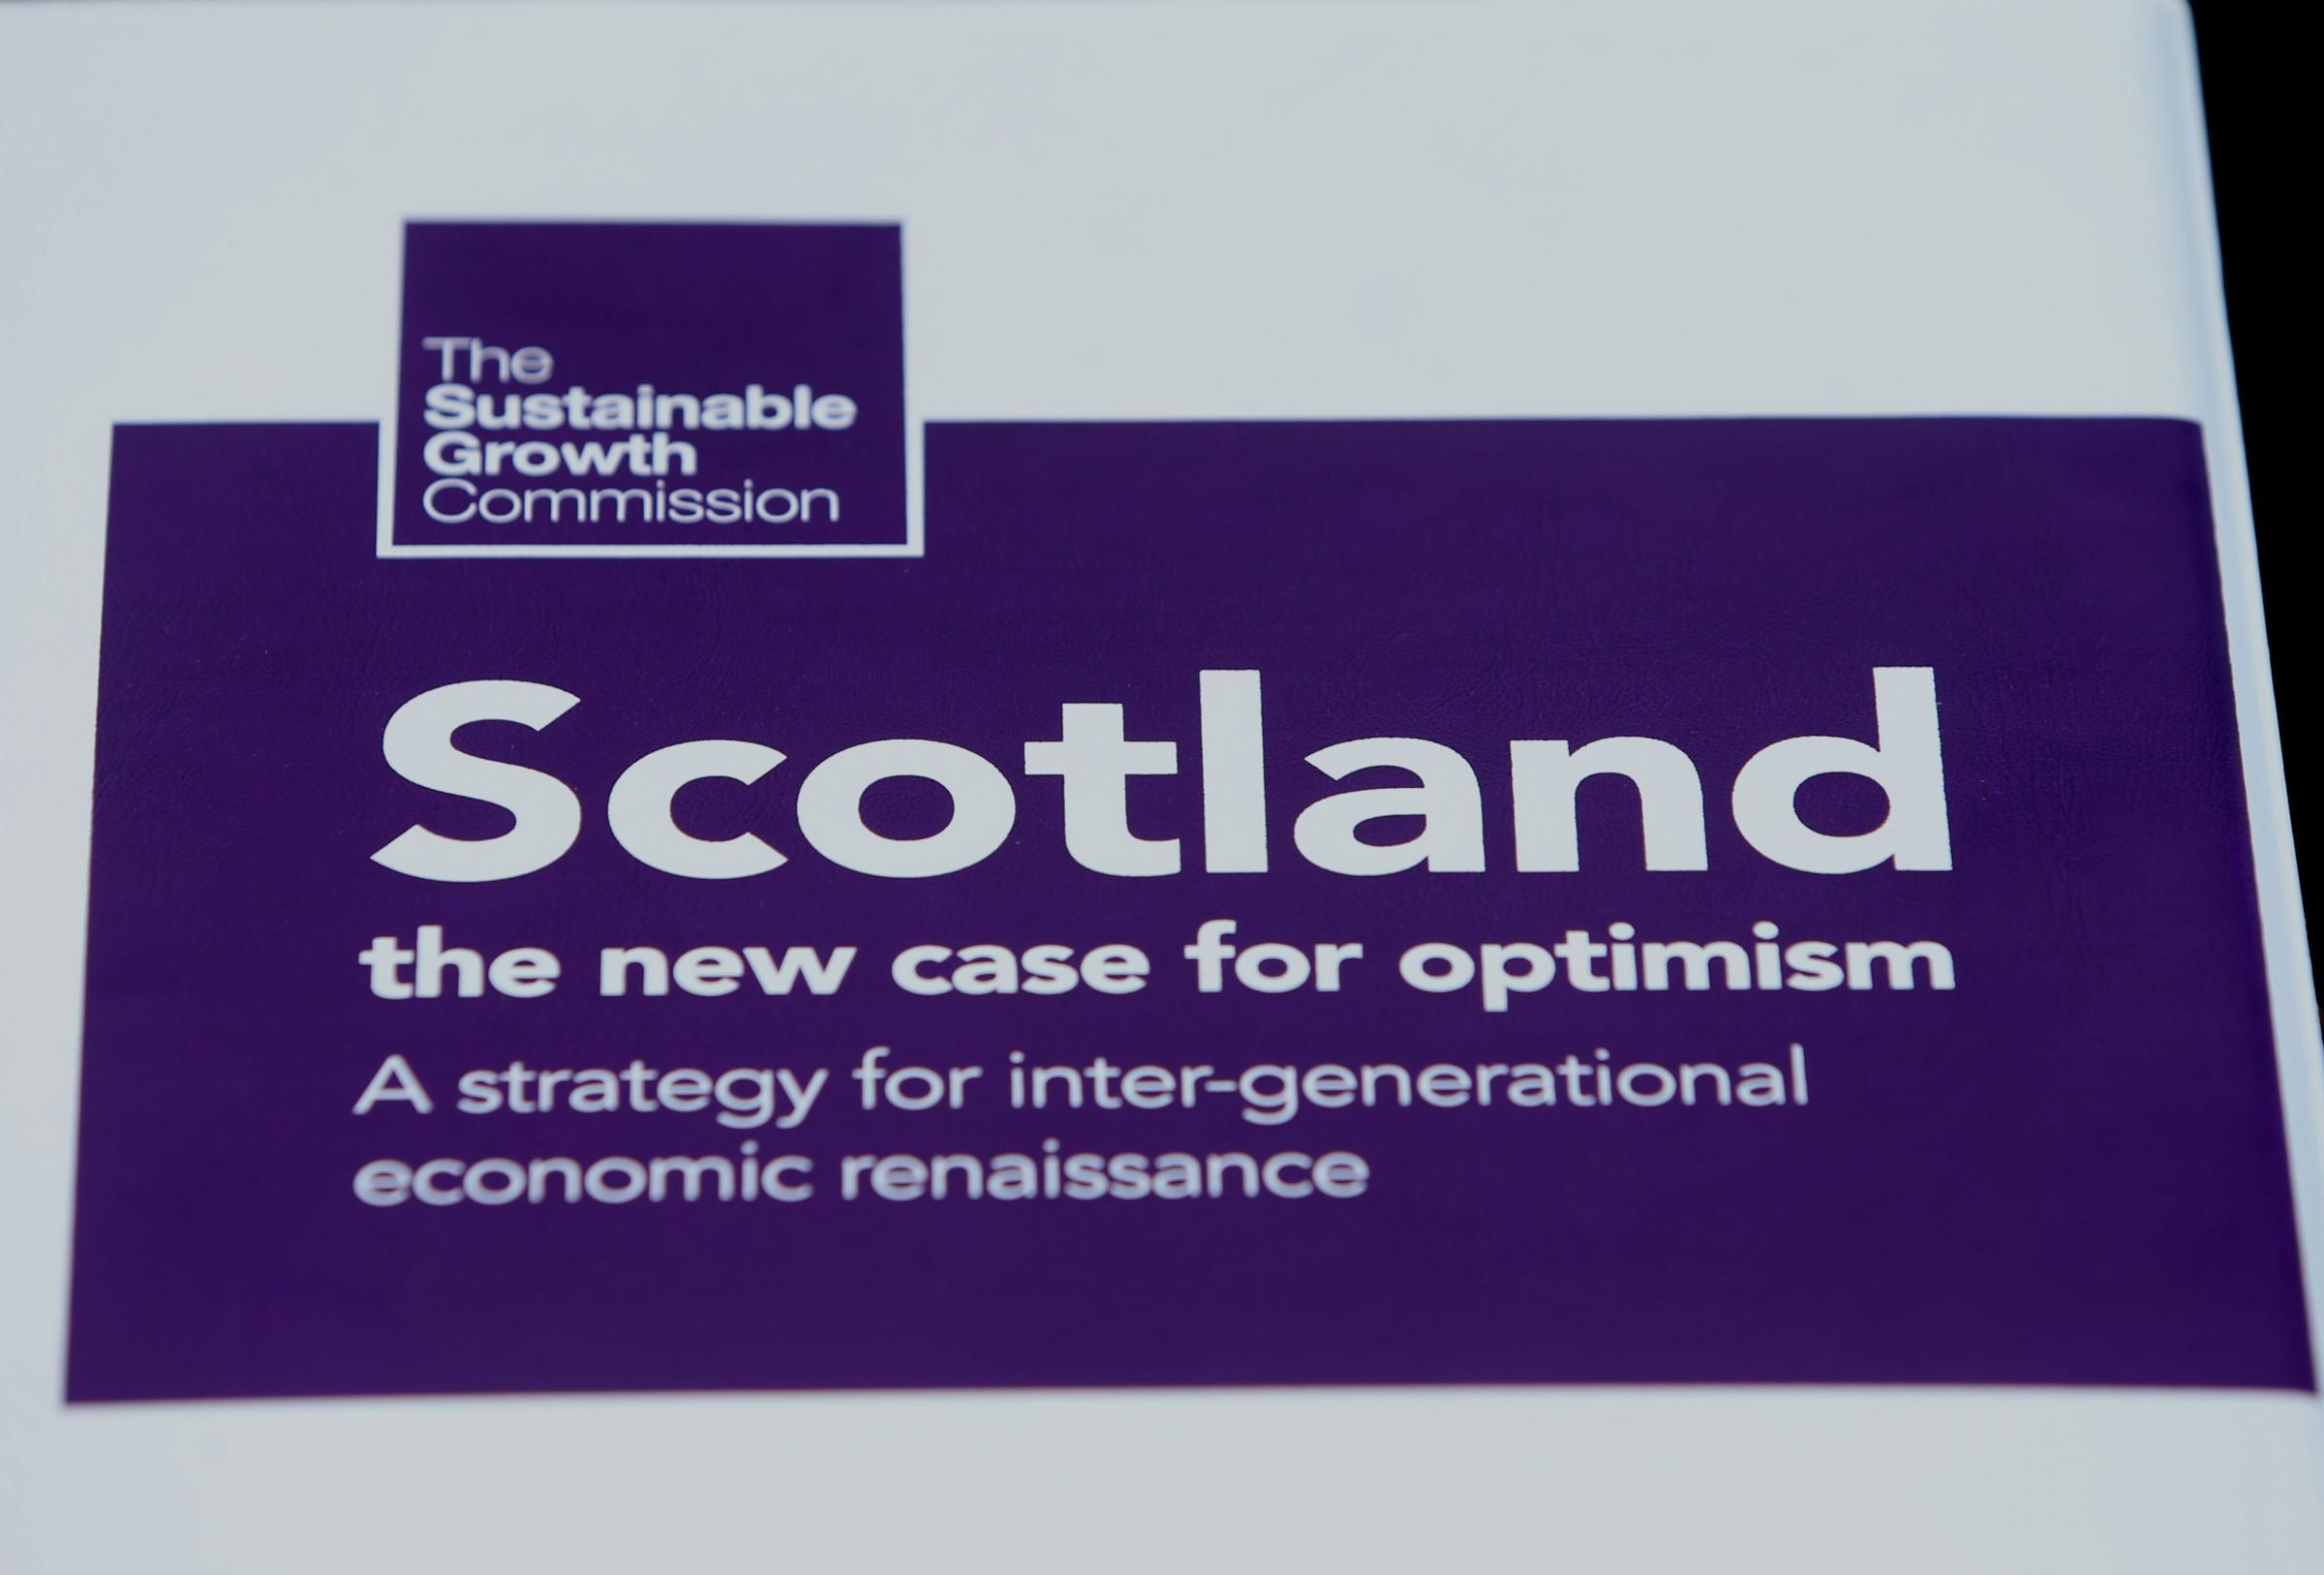 The Sustainable Growth Commission report